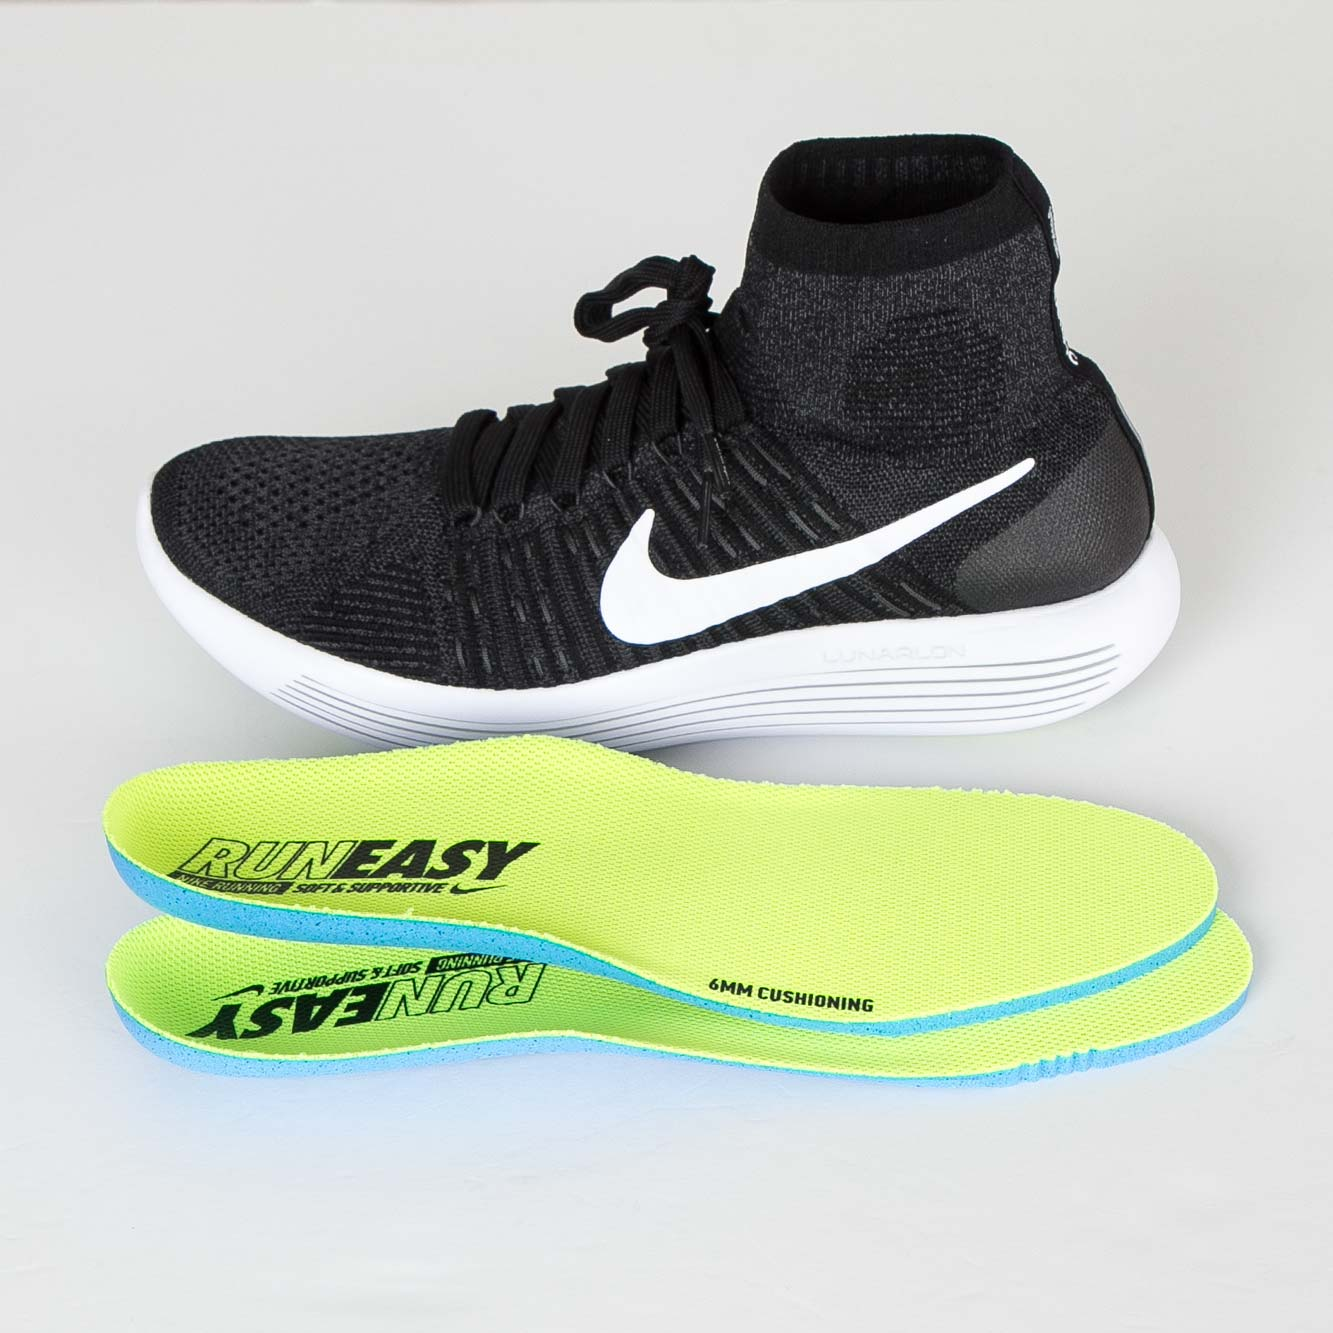 the latest 47d63 99345 Nike Lunarepic Flyknit - 818676-007 - Sneakersnstuff ...